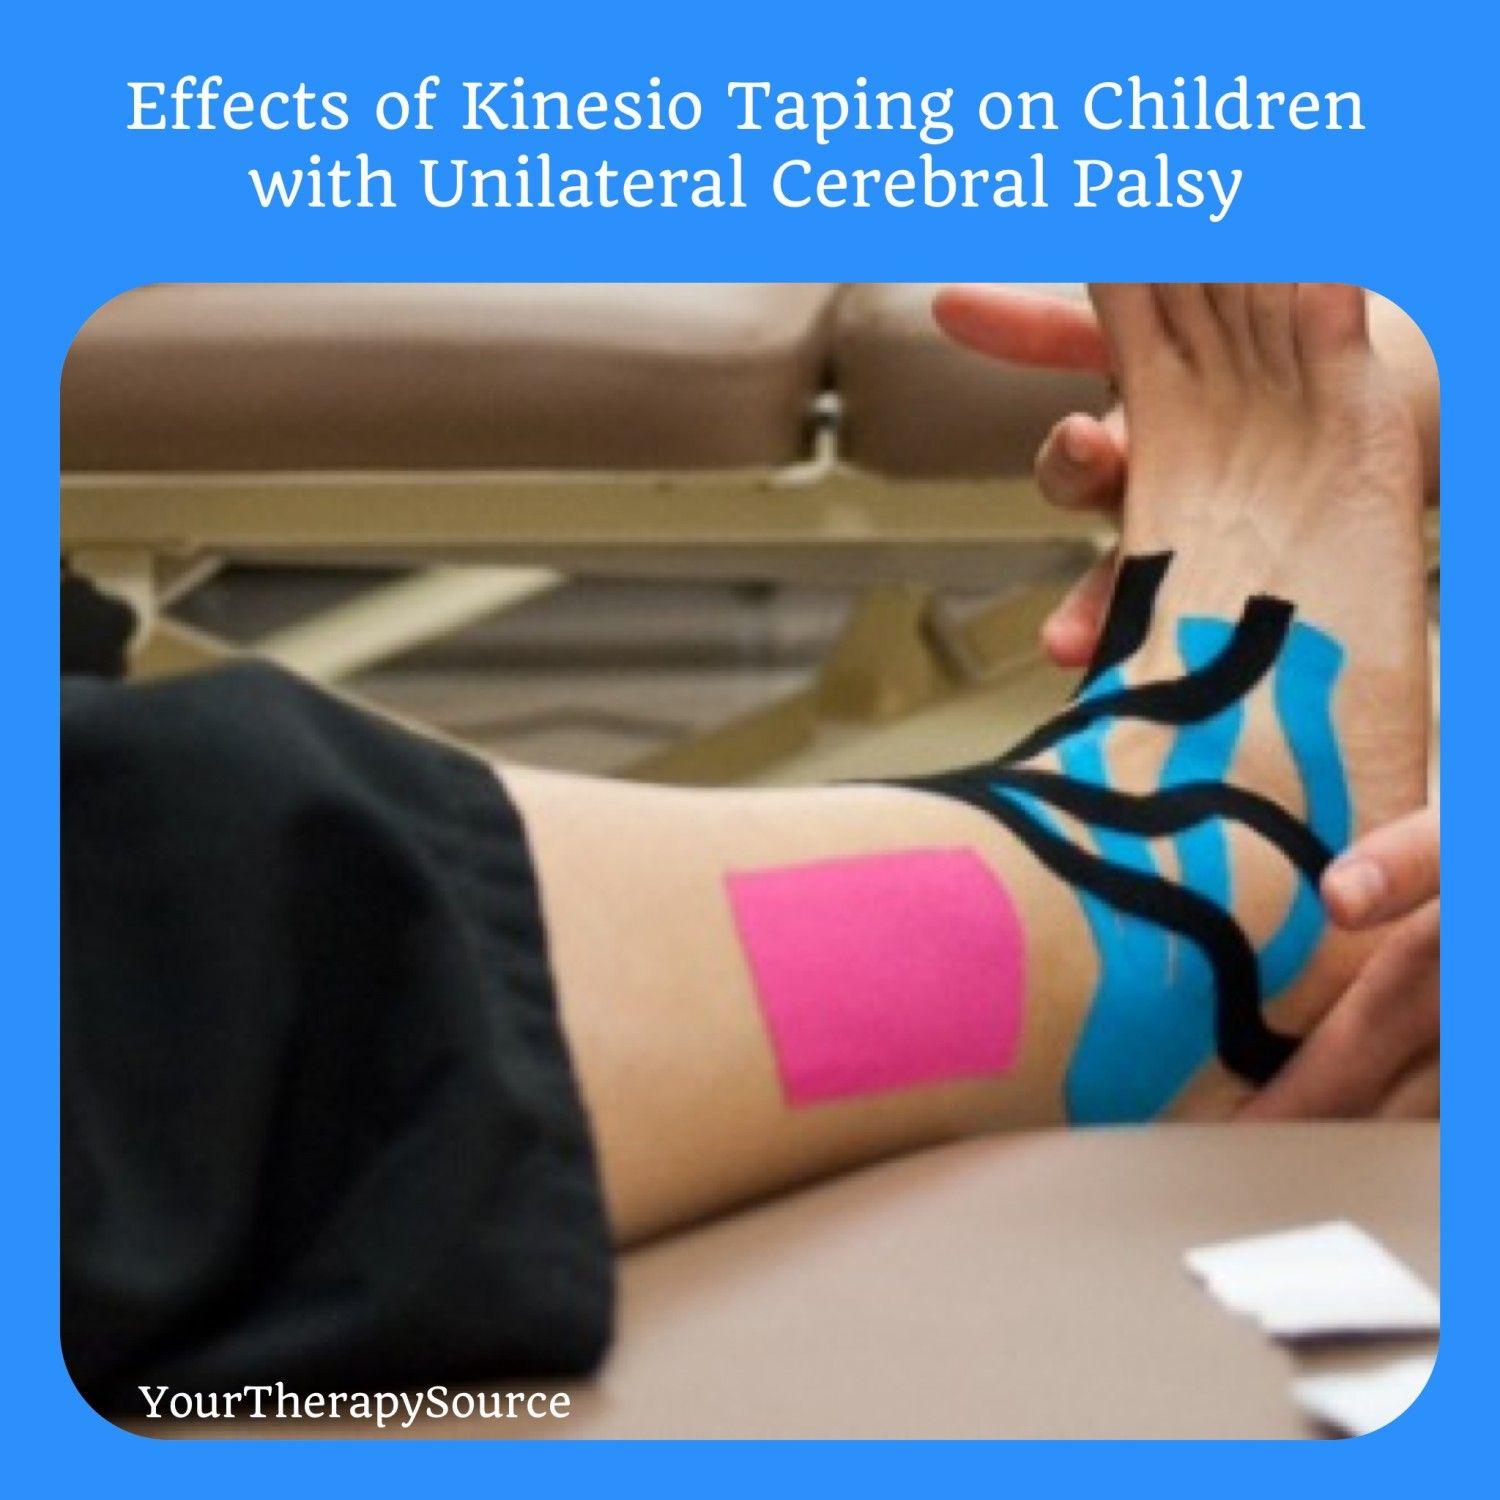 Bright idea 4 physical therapy - Kinesio Taping Unilateral Cerebral Palsy Works For Adults Too